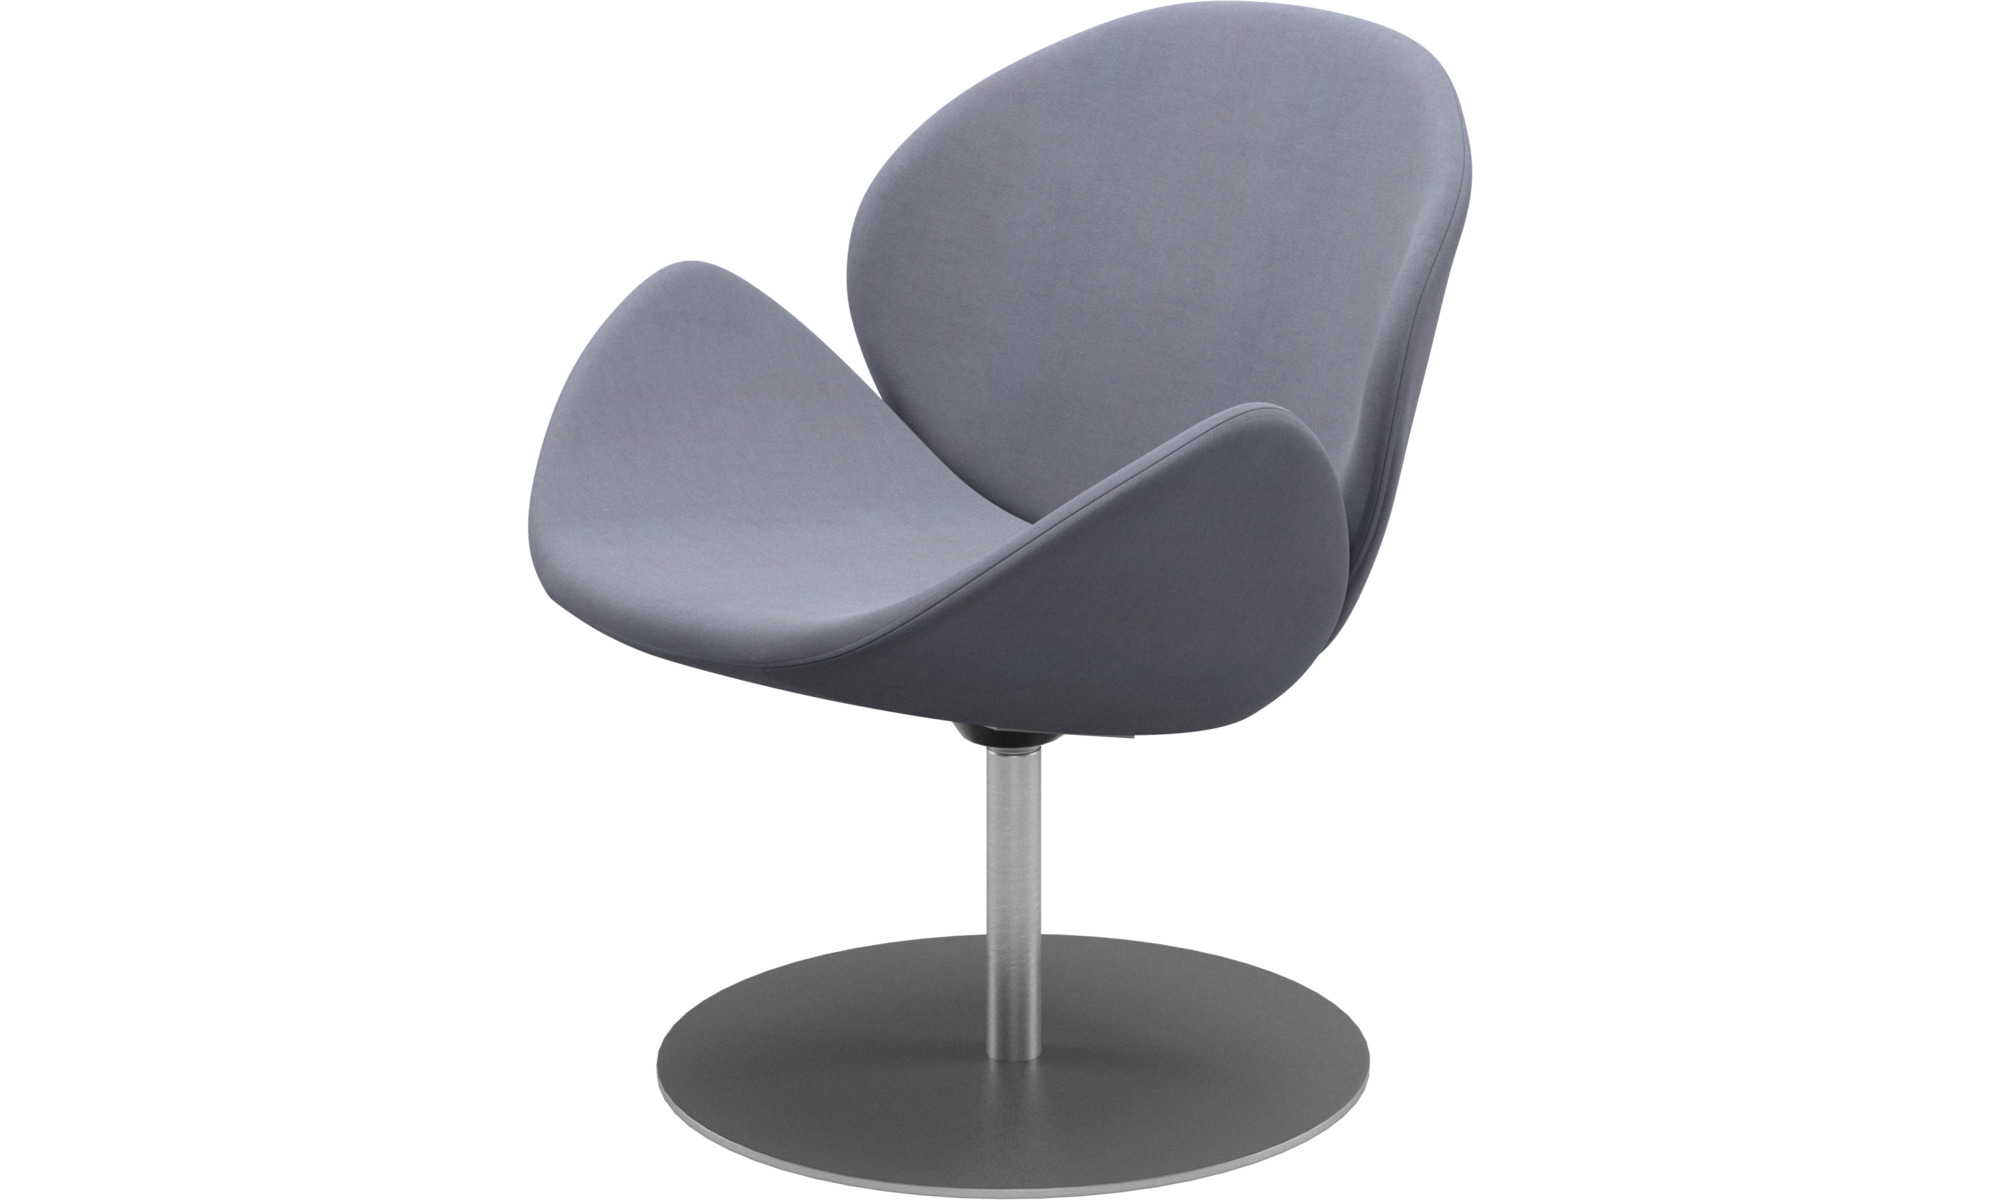 Armchairs - Ogi chair with swivel function - Blue - Fabric